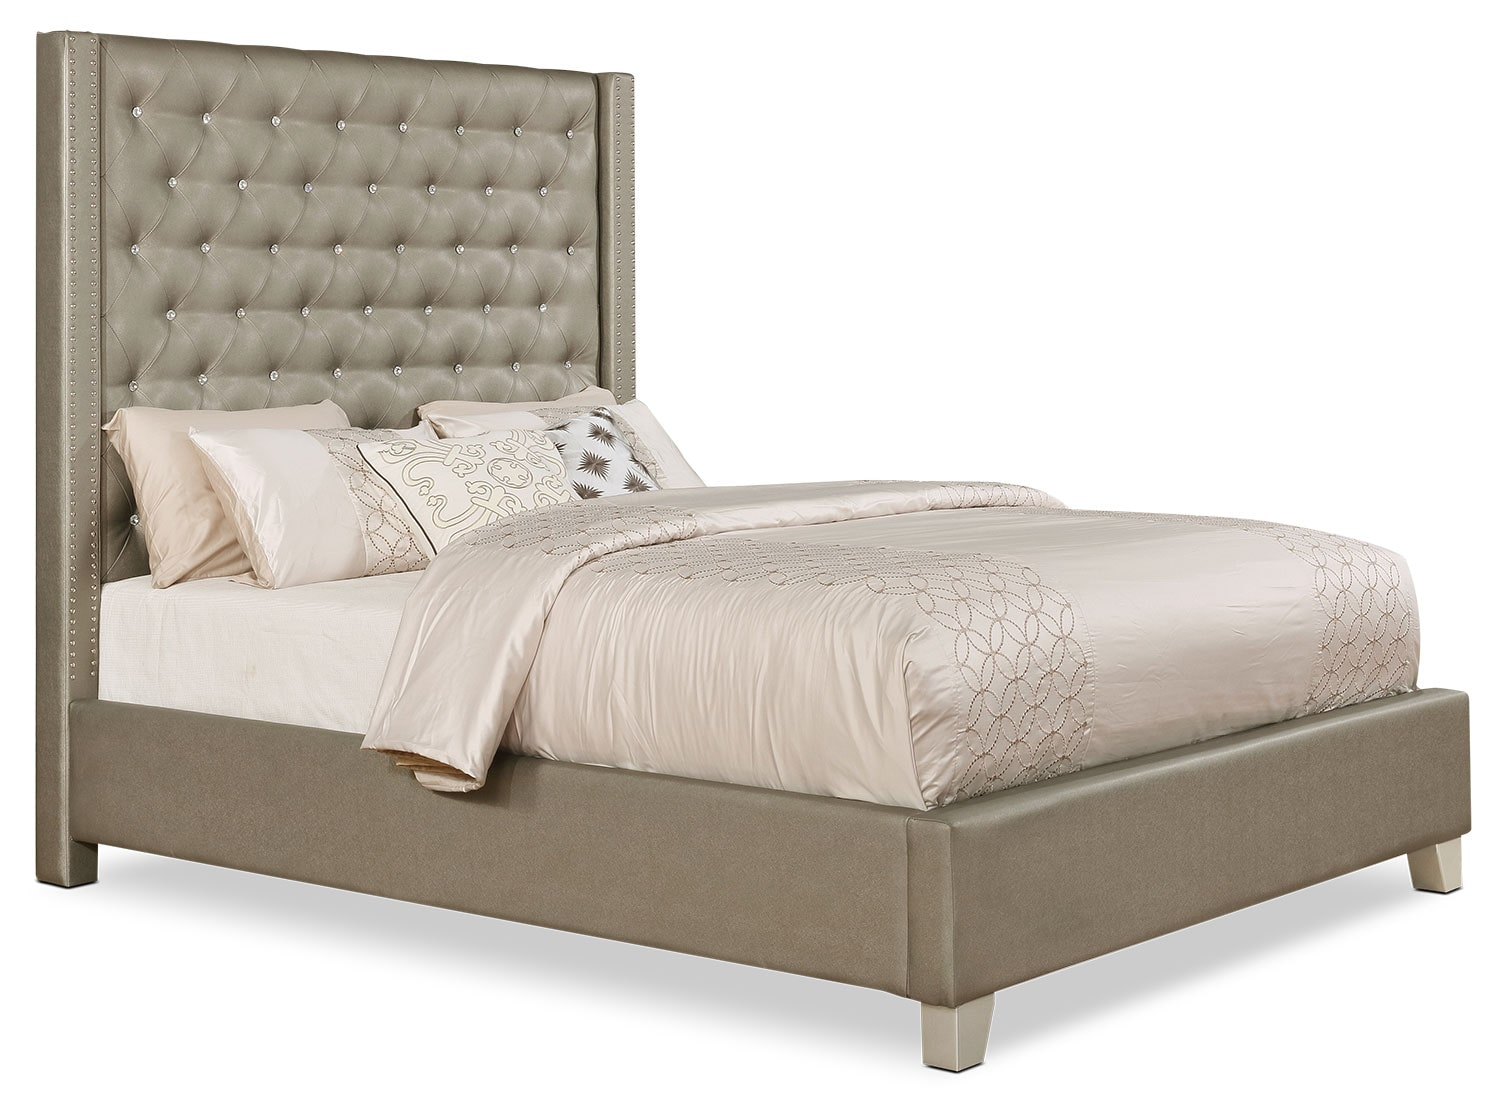 Diva Faux Leather Queen Bed The Brick